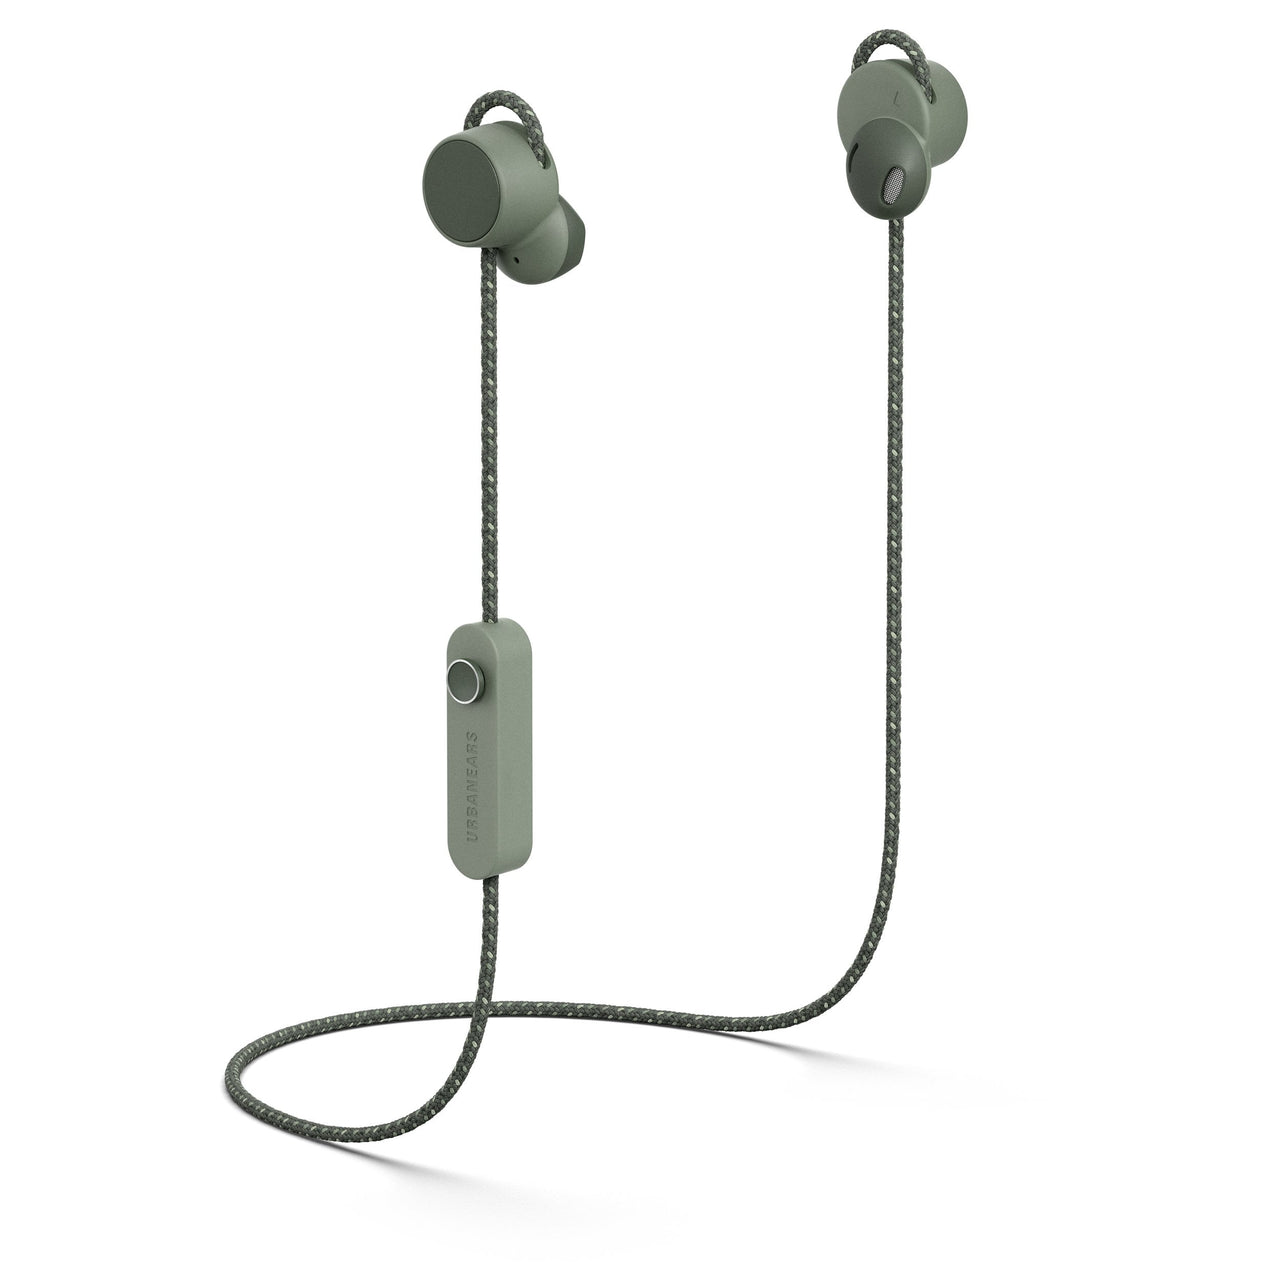 Jakan Bluetooth Earbuds - Field Green, Headphones, Urbanears, ASH Asia